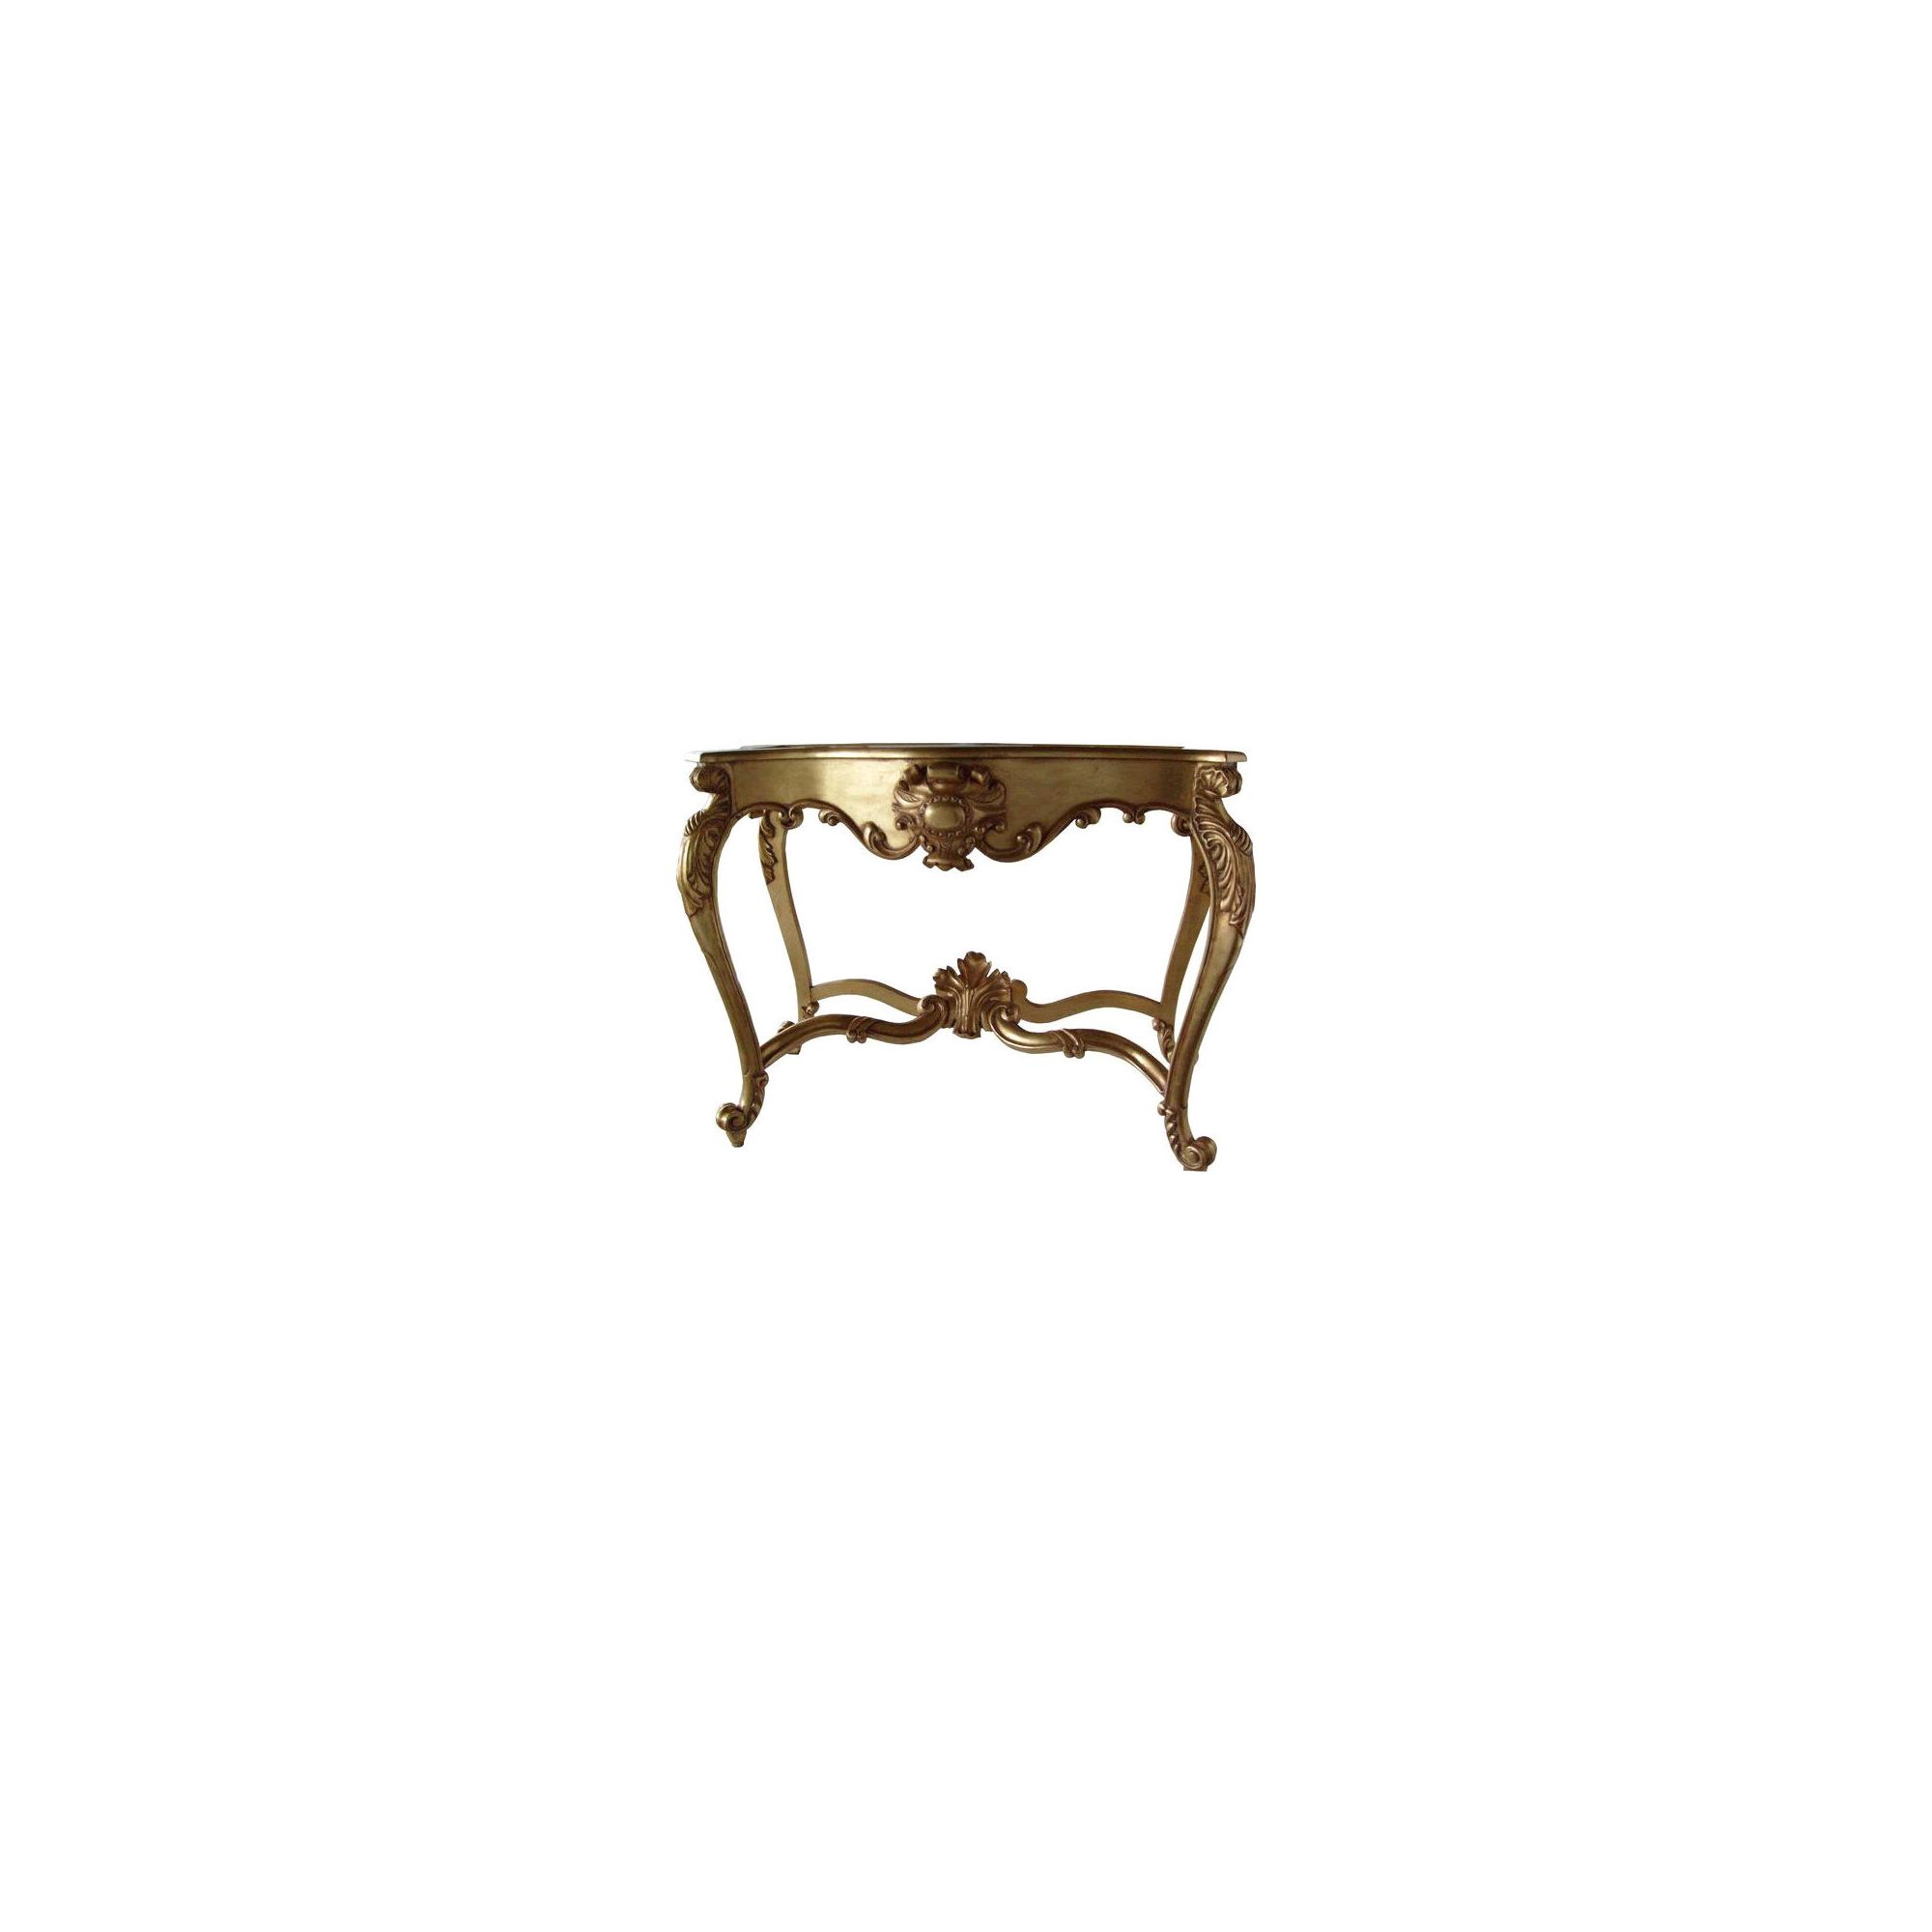 Lock stock and barrel Mahogany Marble Topped Carved Shell Console Table in Mahogany - Gold at Tescos Direct